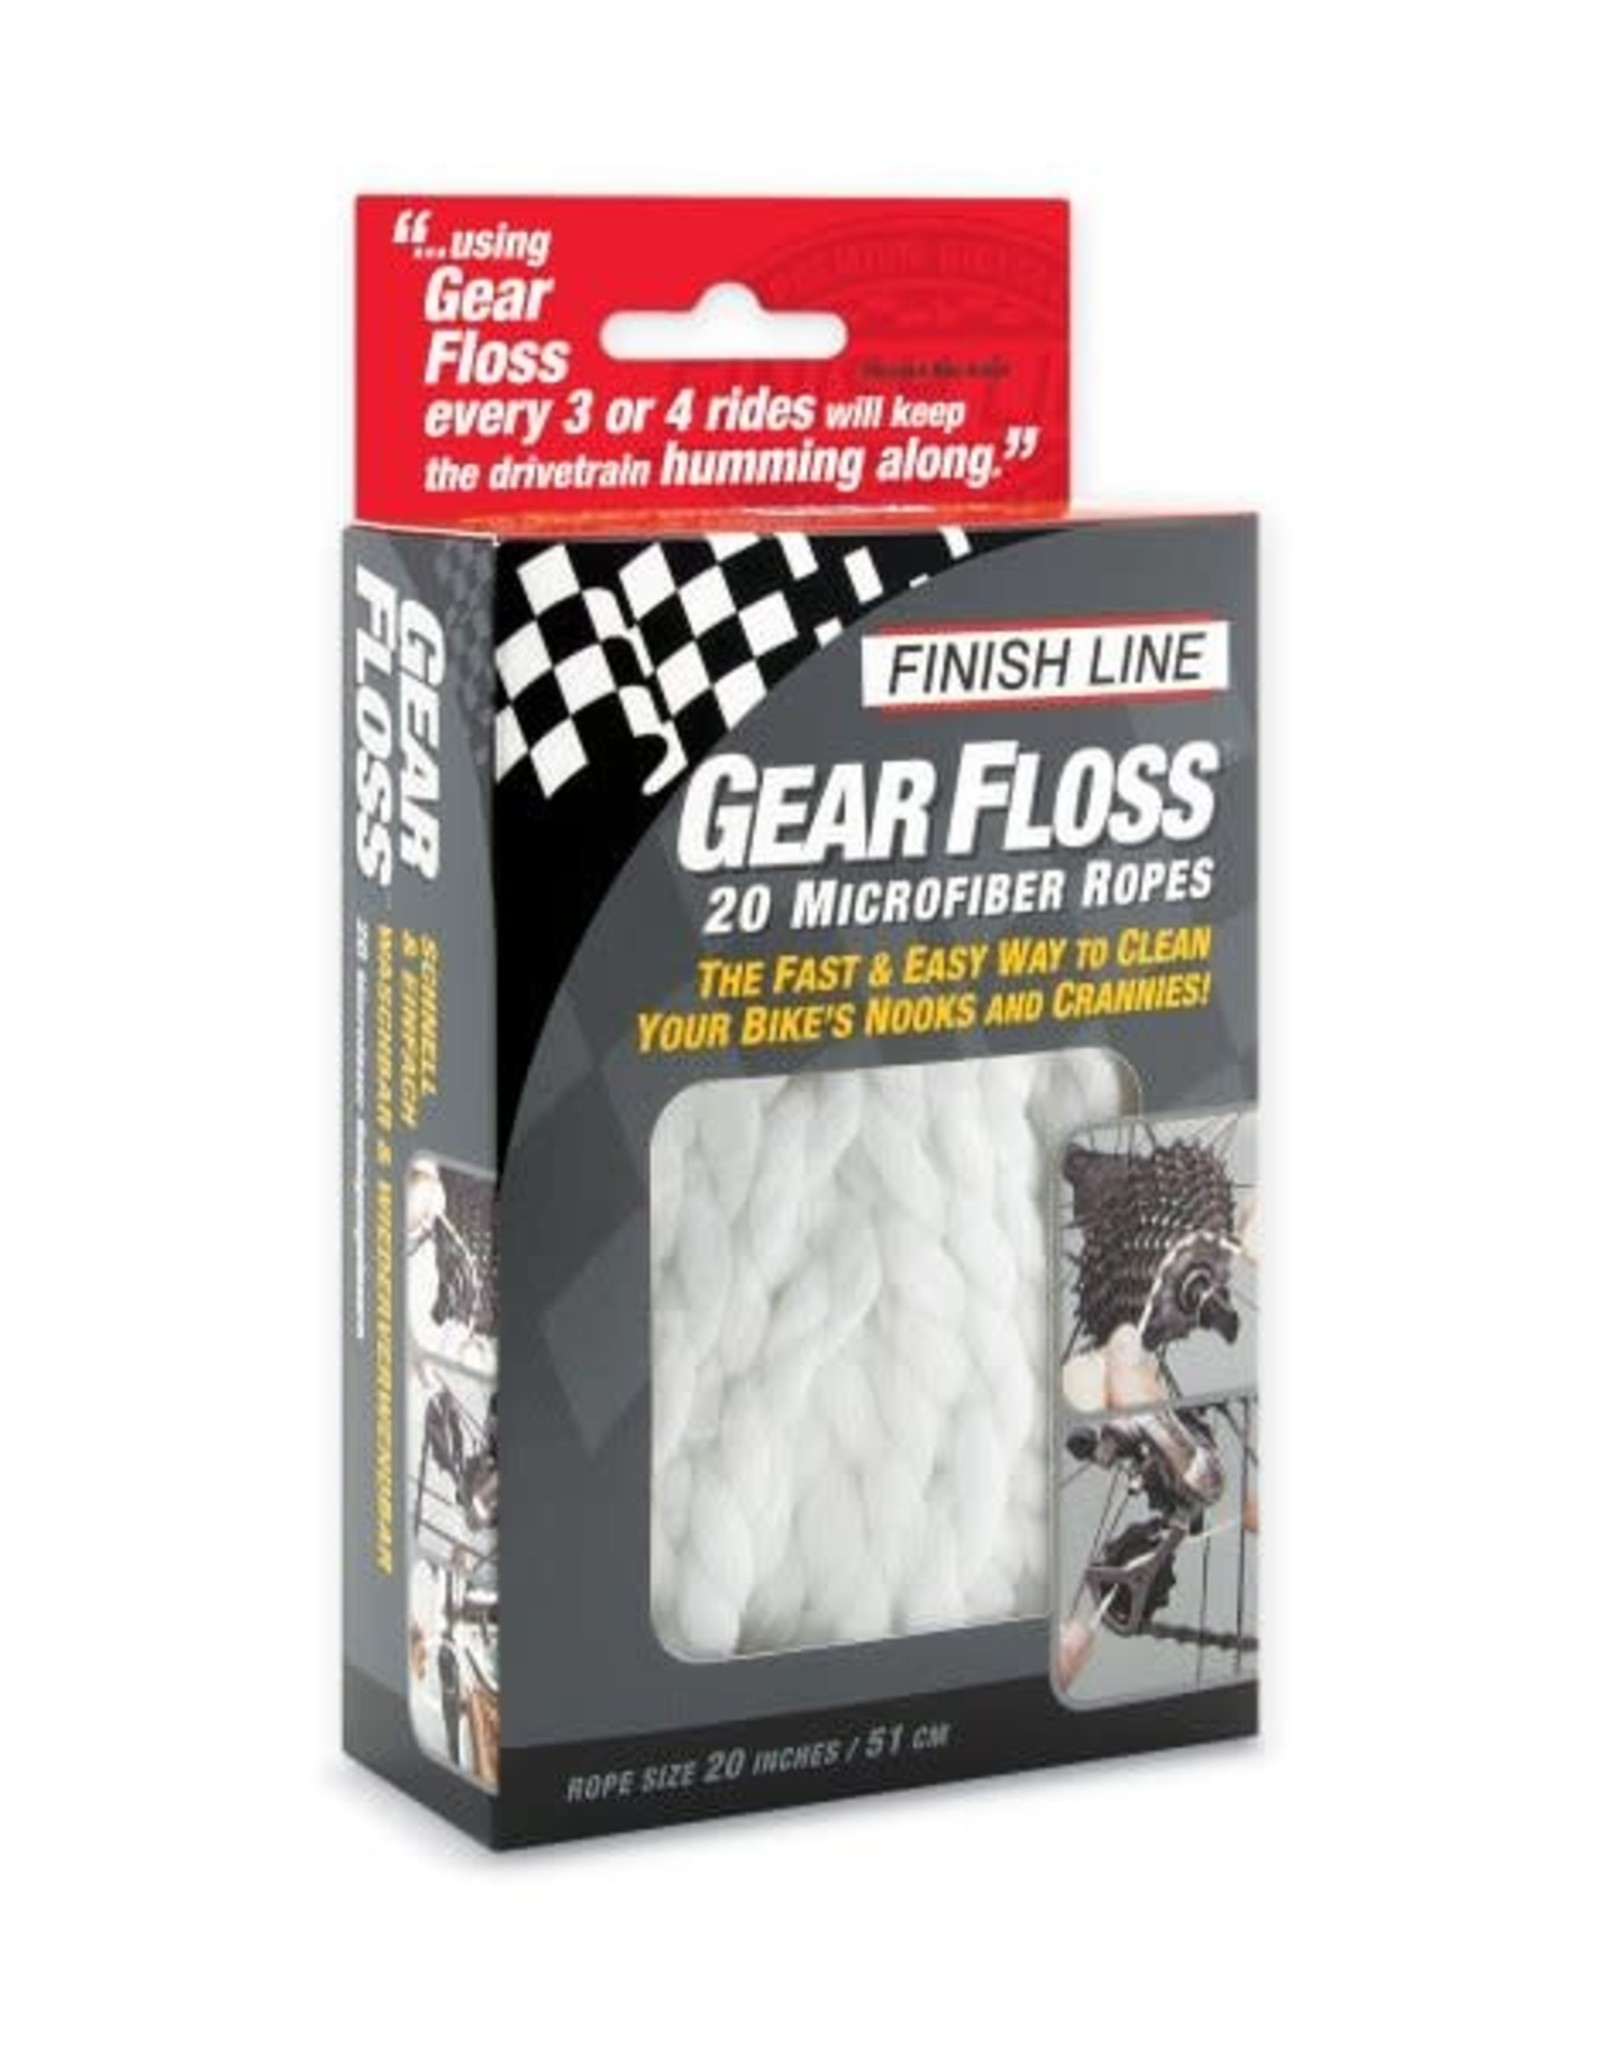 FINISH LINE Finish Line, Gear Floss, pack of 20